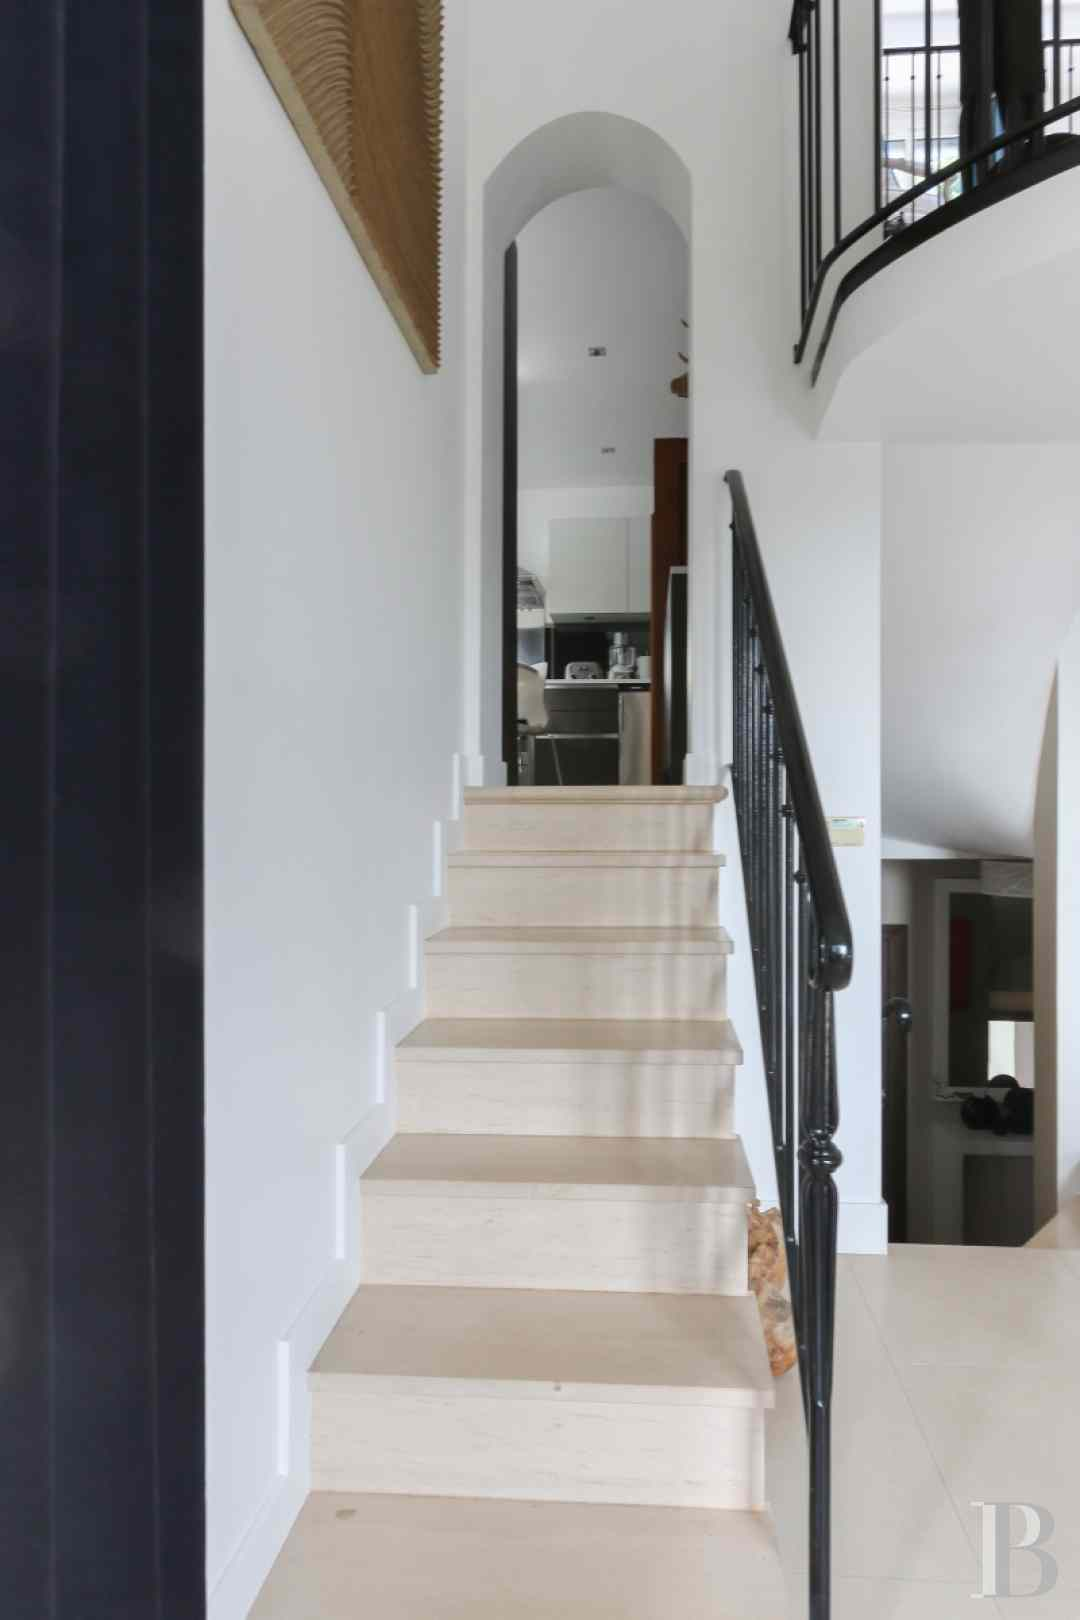 property for sale France paris residences 20th - 8 zoom